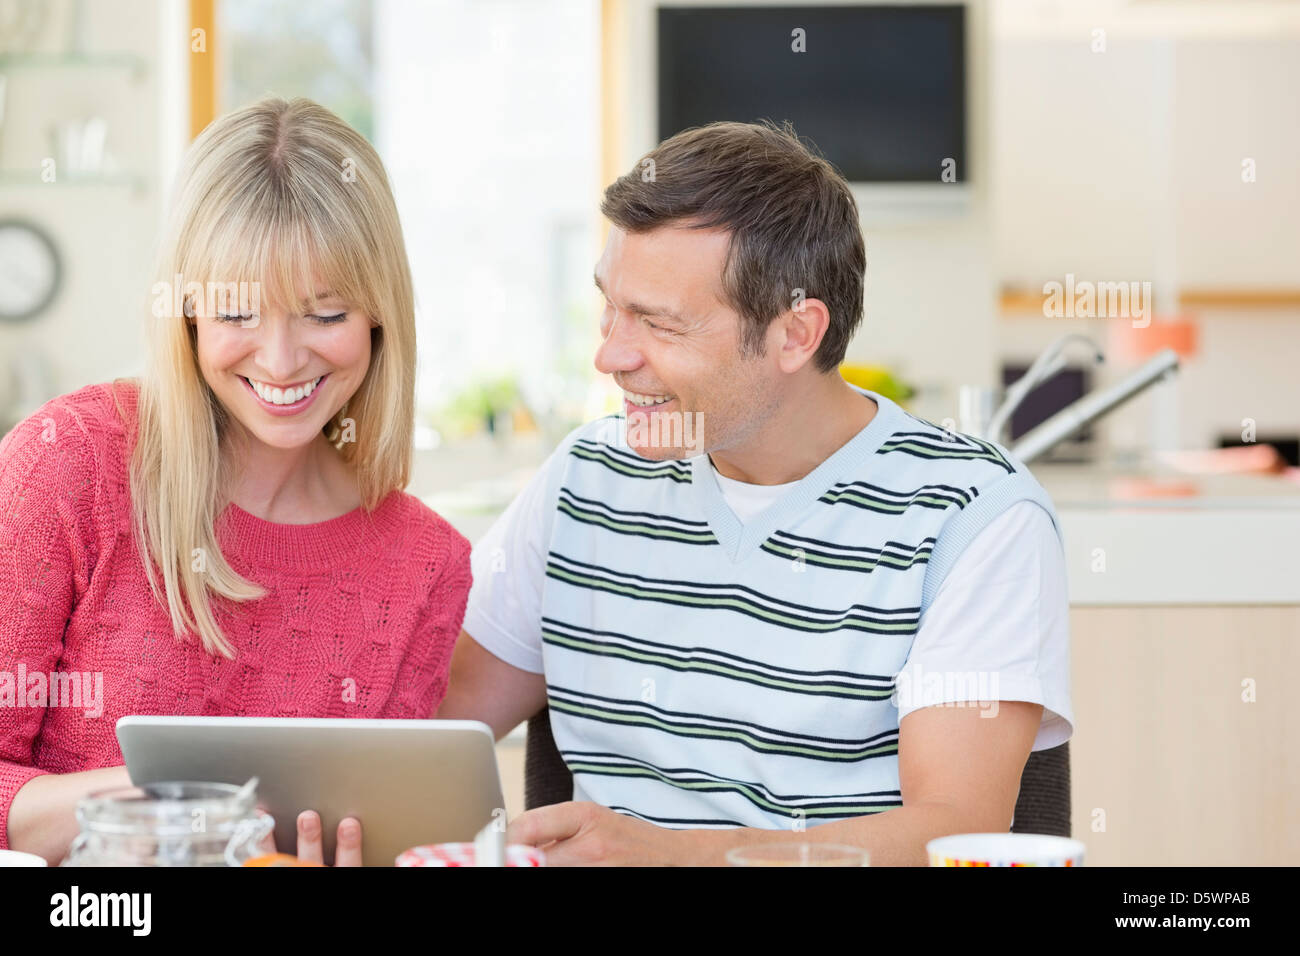 Couple using tablet computer at table - Stock Image